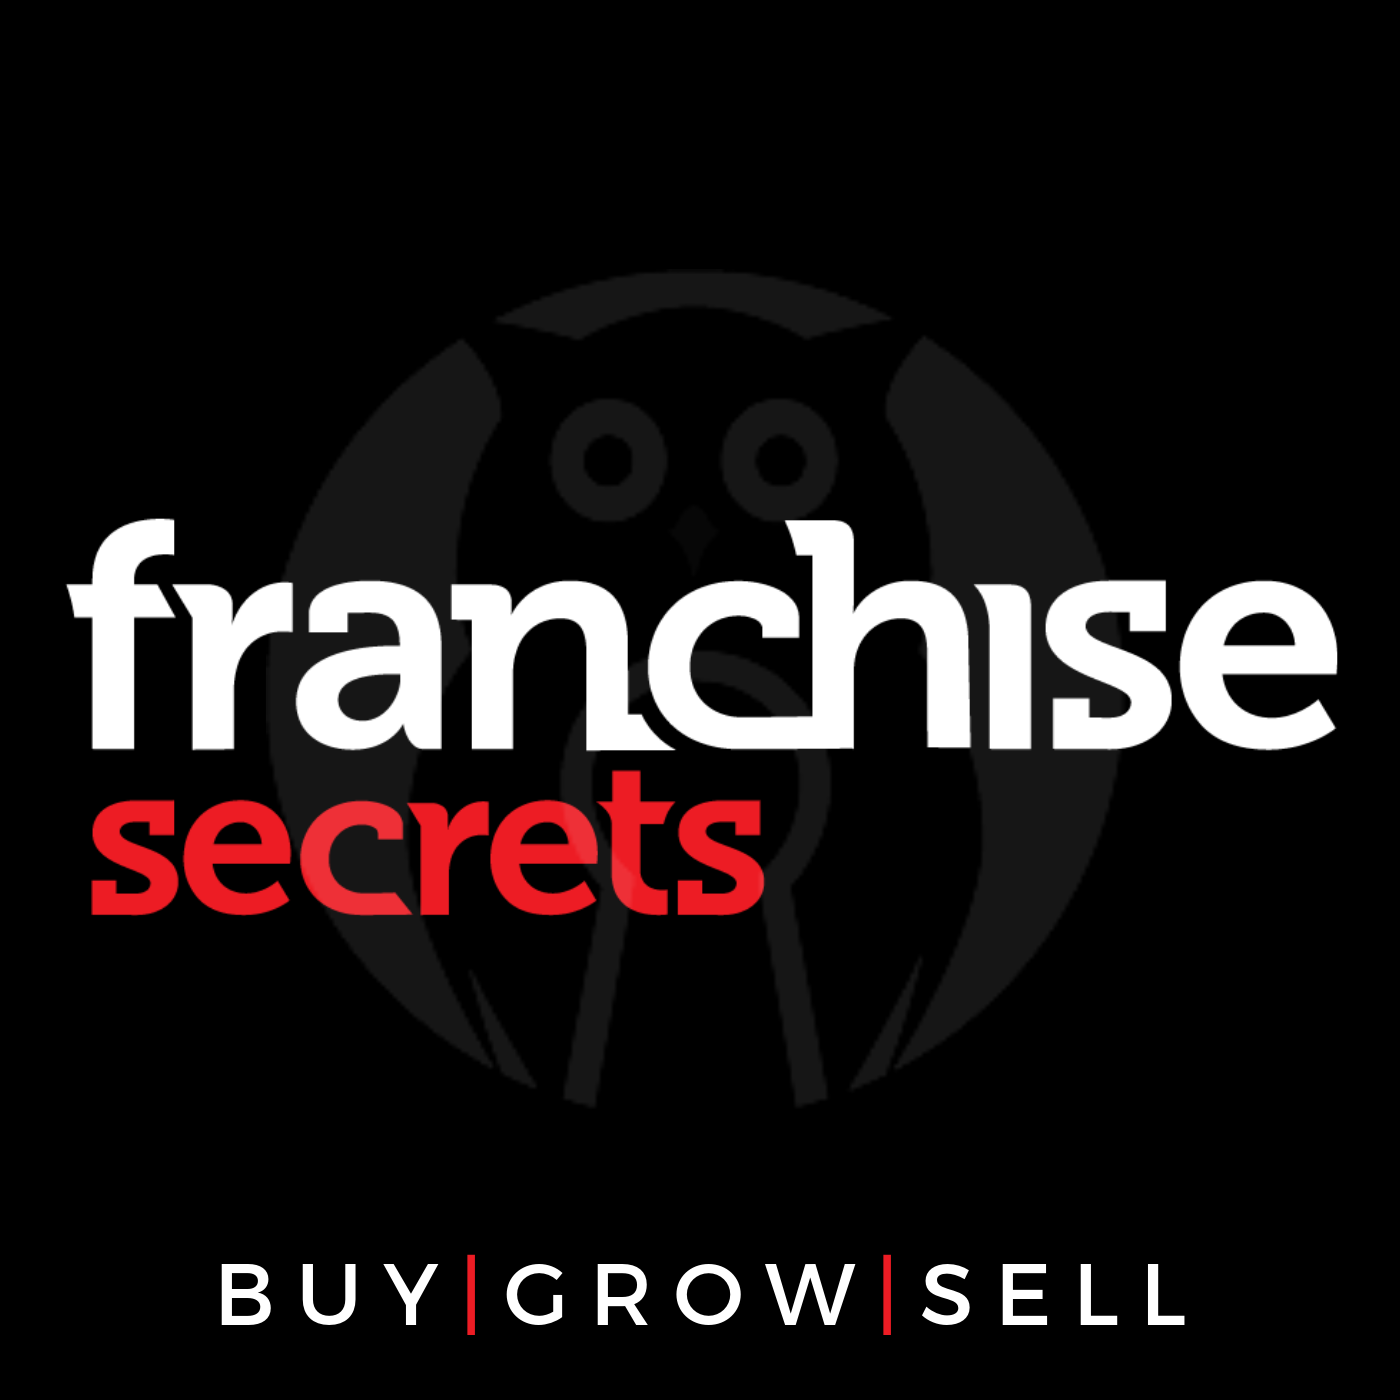 78: Building a Business Idea Into an Emerging Brand and Competitive Franchise, with Guest Franchisor Jeff Dudan